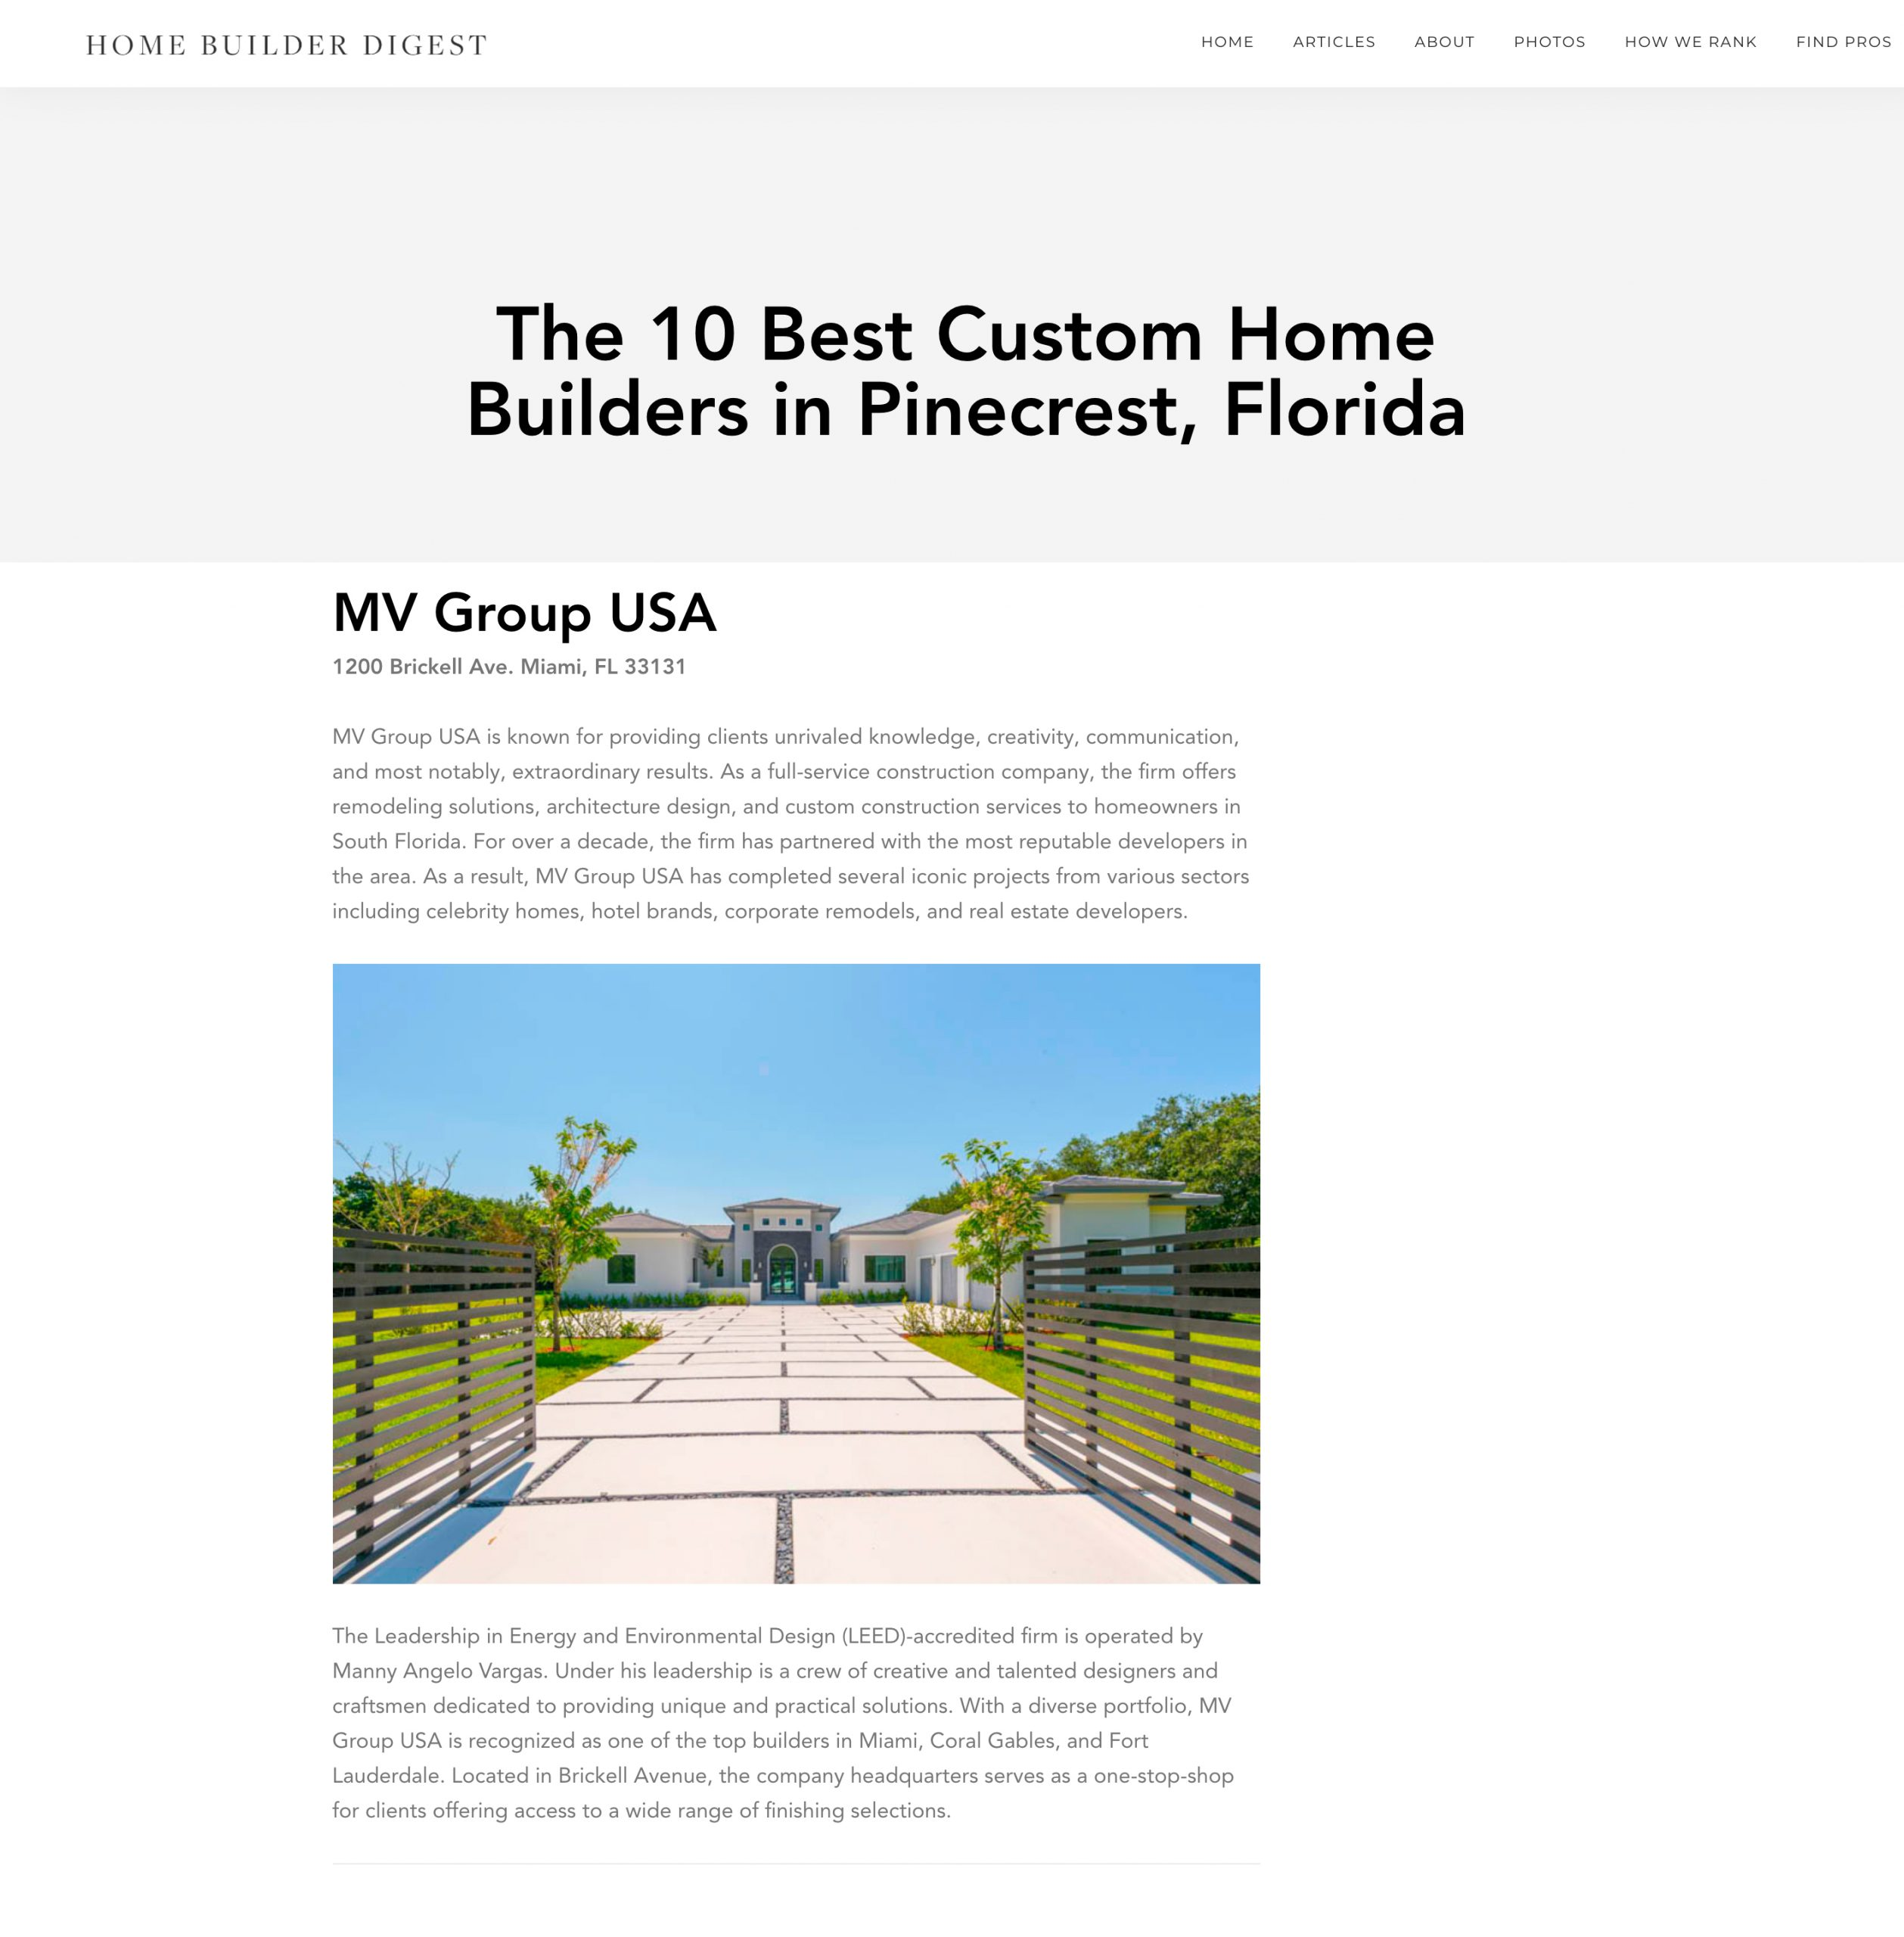 Home Builder Digest – The 10 Best Custom Home Builders in Pinecrest, Florida